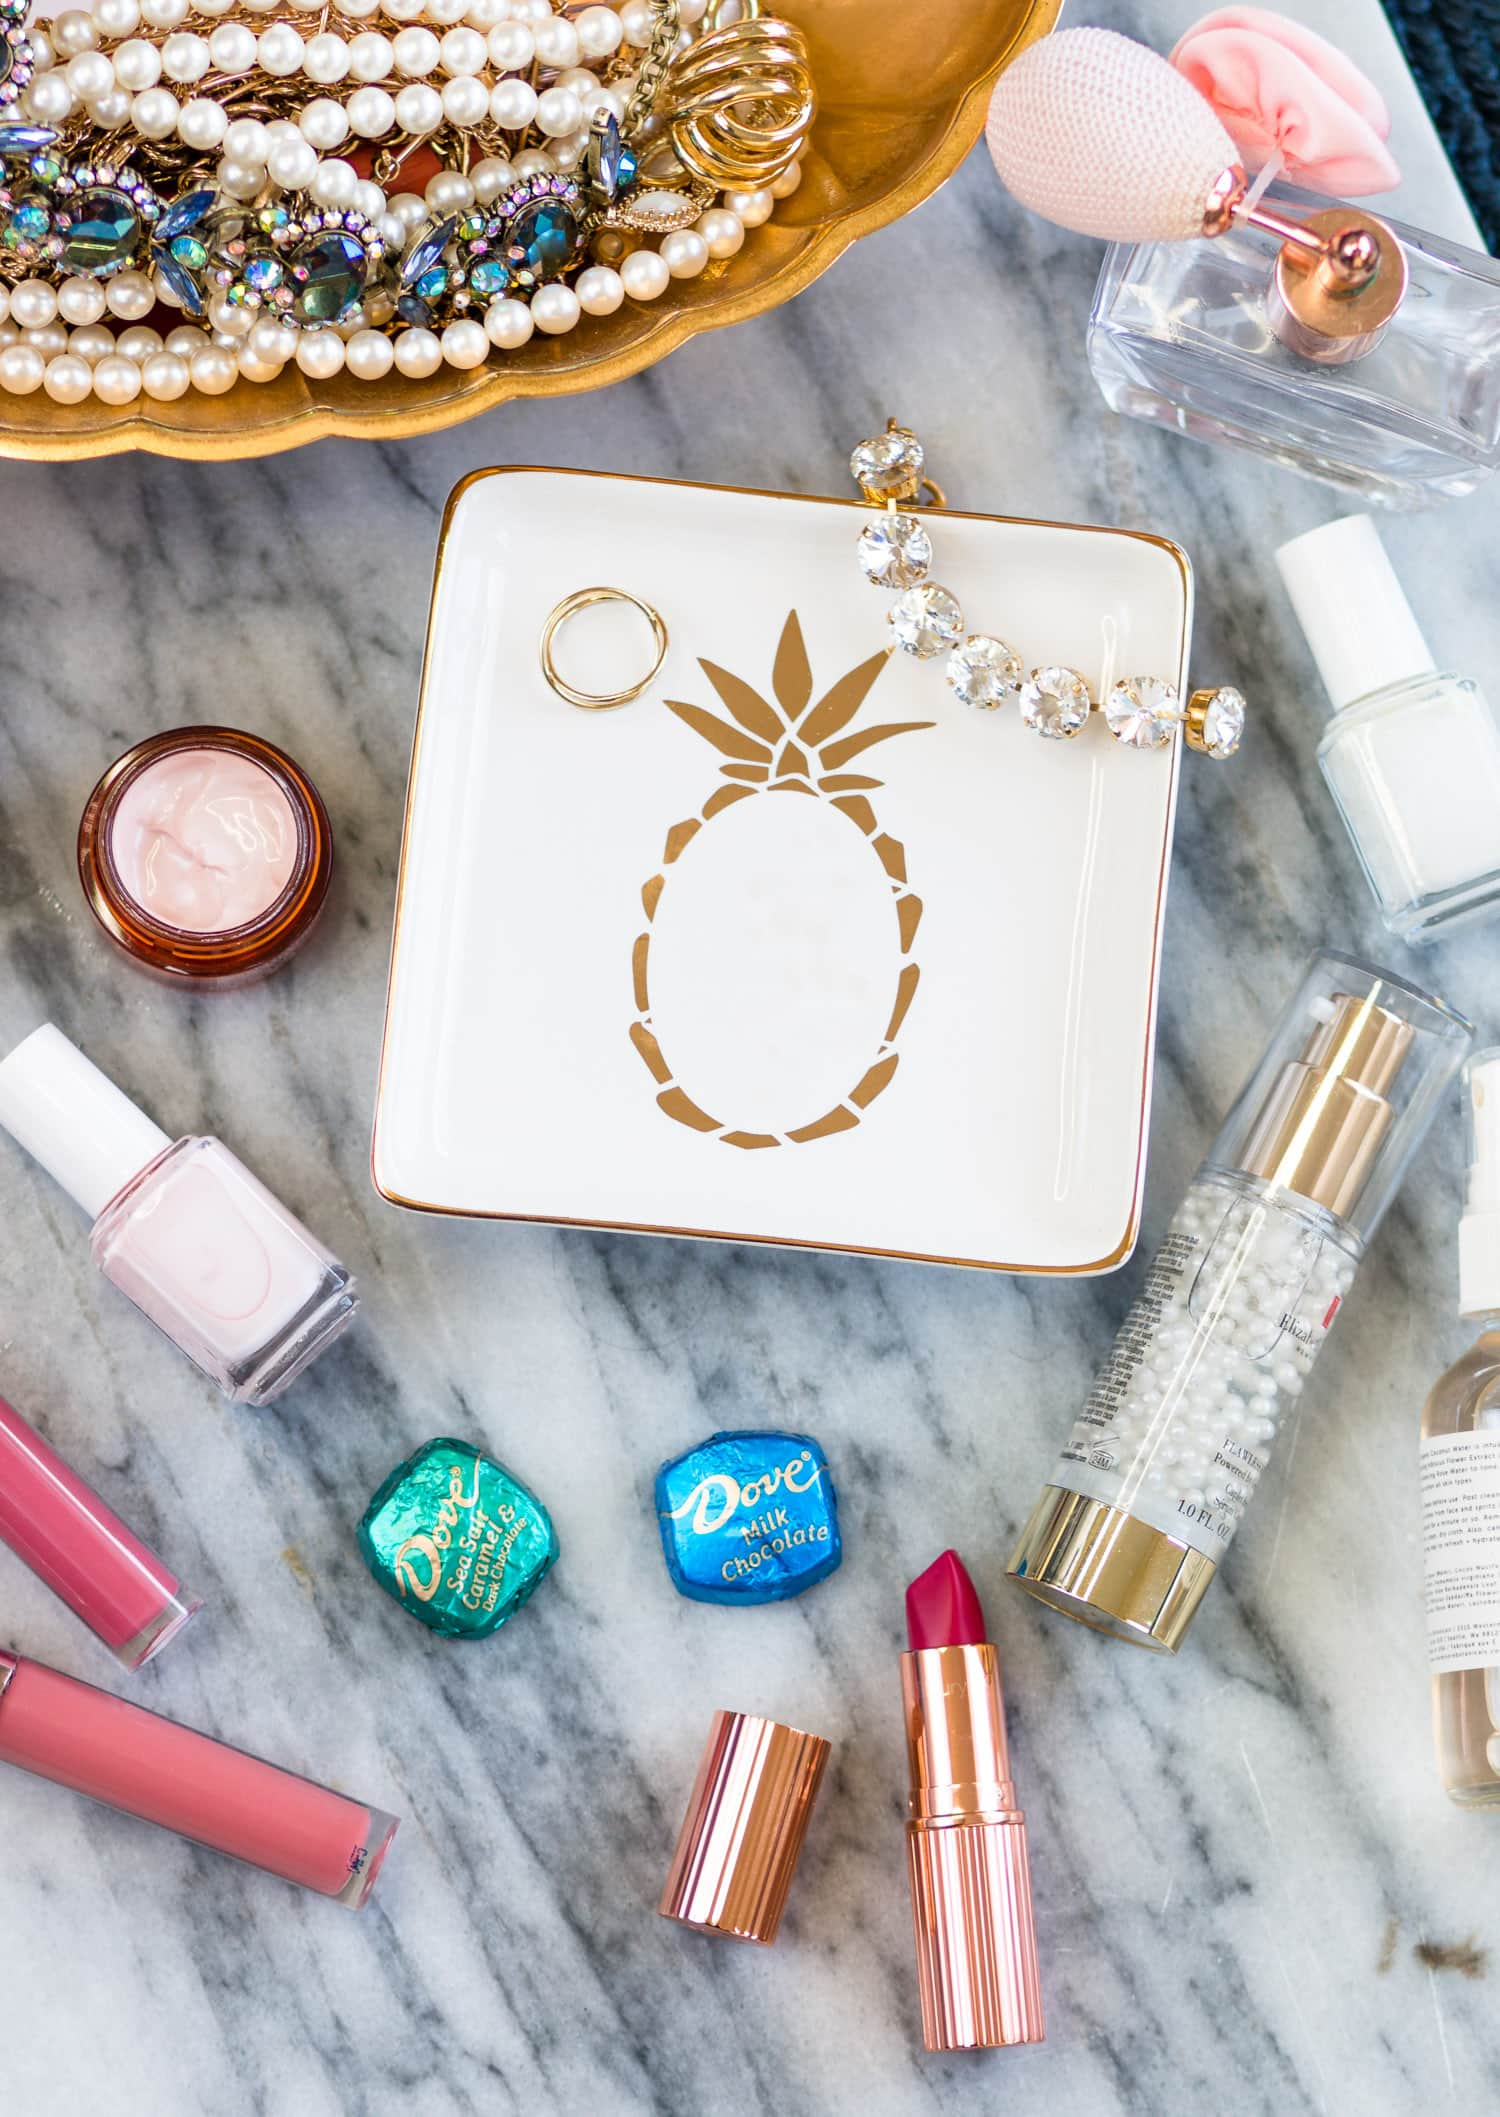 White and gold pineapple trinket dish, sparkly jewelry, feminine perfume, Charlotte Tilbury The Queen lipstick, Dove chocolate | 10 easy ways to de-stress after a long day - including a pamper session with your favorite beauty products and creating a gratitude journal! #unwindwithdove sponsored by @DOVEChocolateUS     | Dove chocolate, stress relief, how to relieve stress, how to calm down, gold candle, stress relief tips, pineapple plate, white and gold, white and gold pineapple, rhinestone bracelet, beautiful jewelry, beautiful flatlay, flatlay, red lipstick, magenta lipstick, white pink nail polish, girly inspiration | Florida lifestyle blogger Ashley Brooke Nicholas